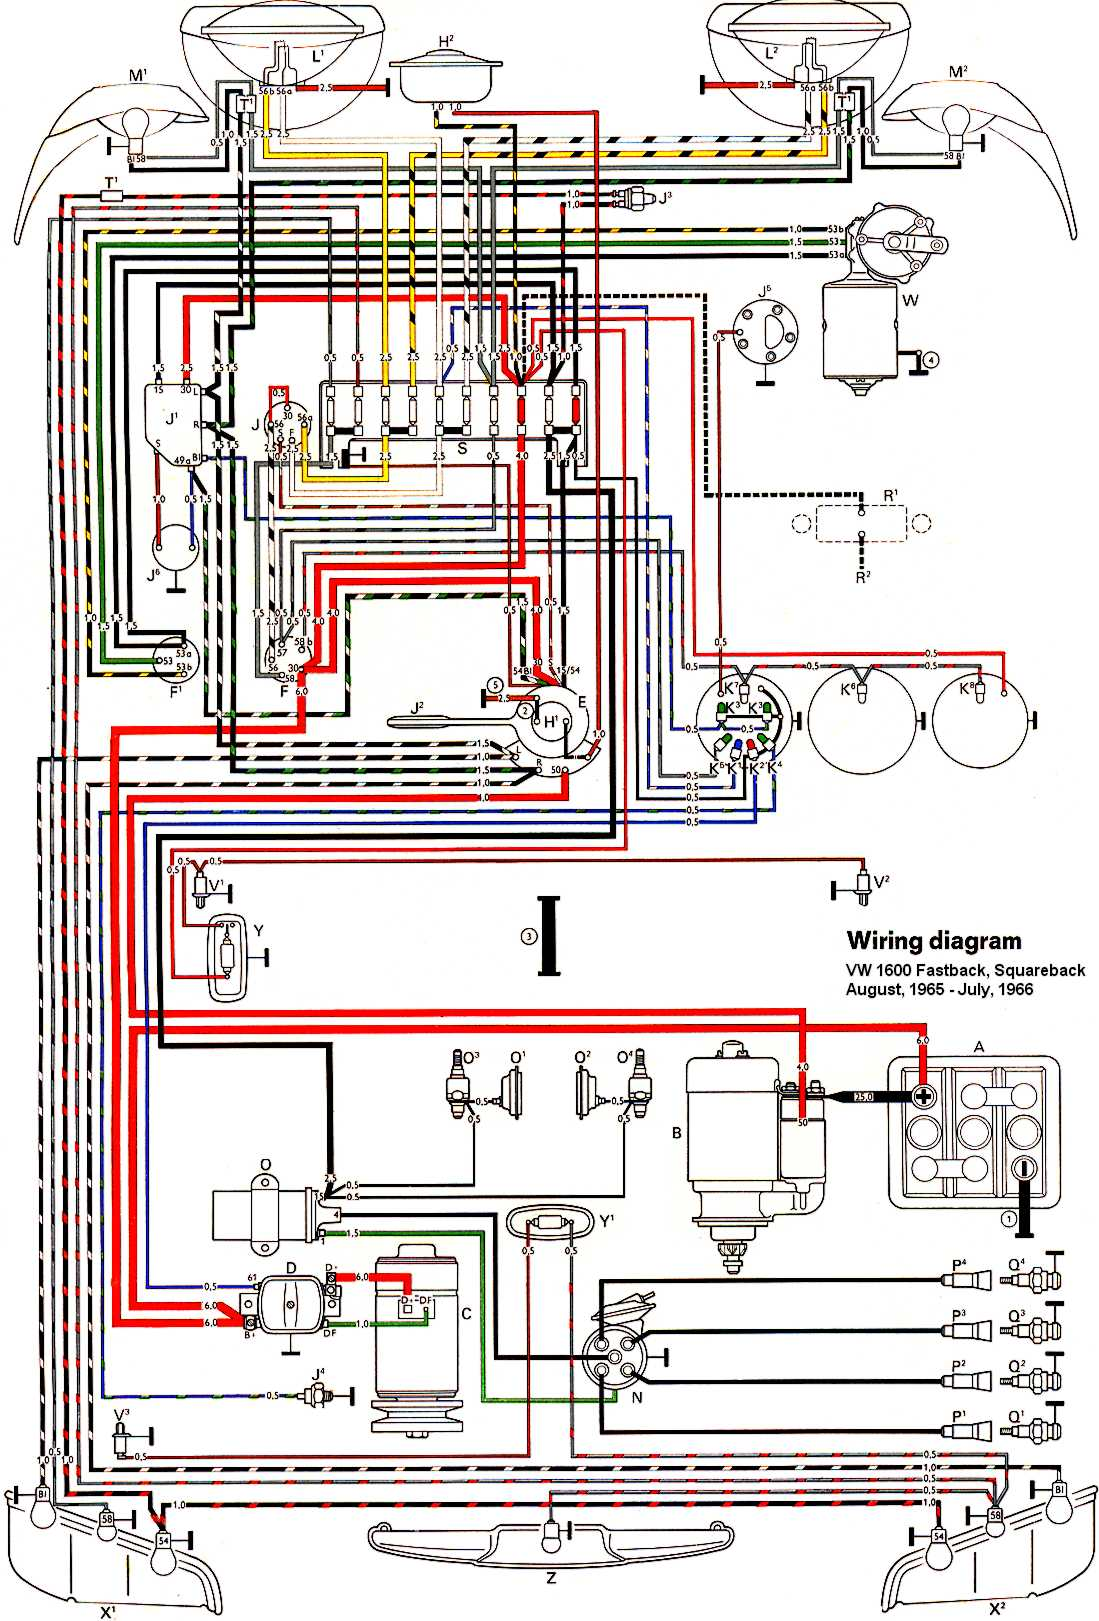 Volkswagen Type 3 Wiring Diagram Most Uptodate Info Bugeye Sprite Thesamba Com Diagrams Rh 1964 1971 Vw